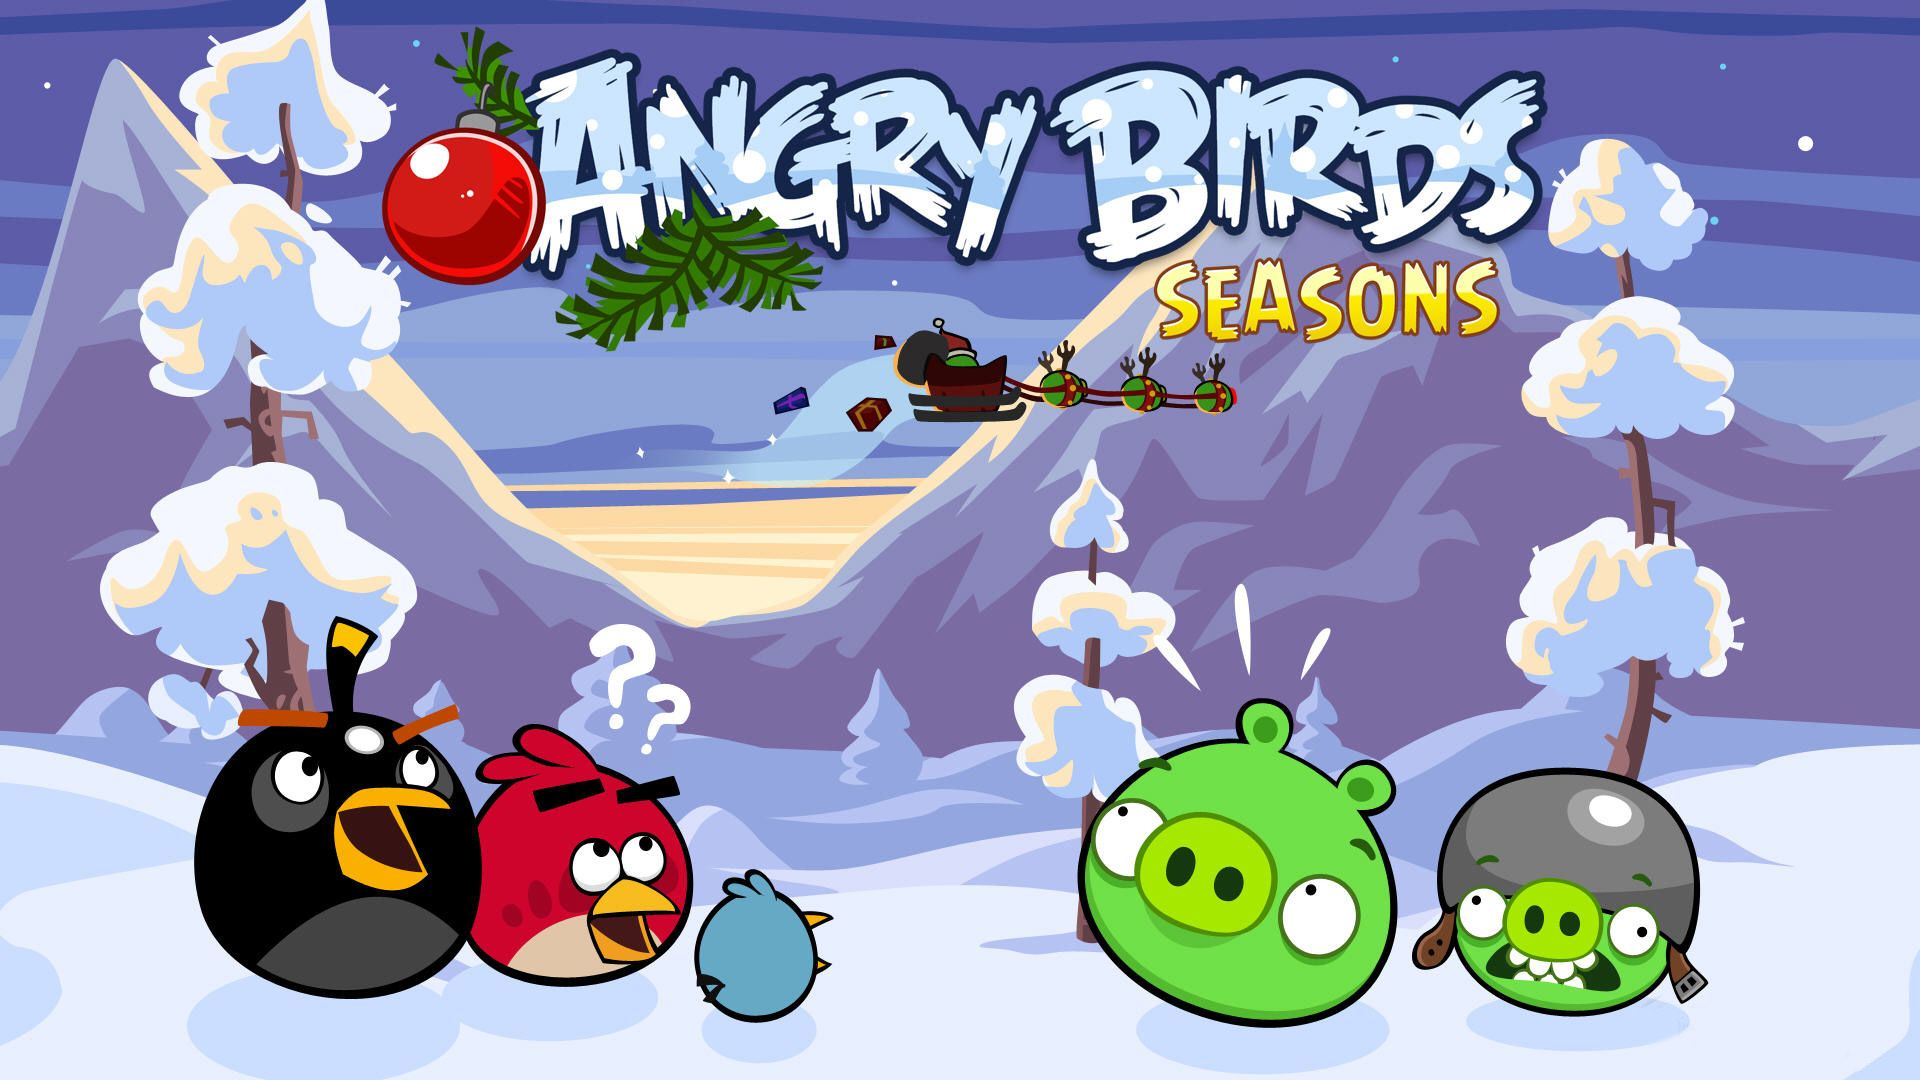 Angry Birds Christmas HD Wallpapers These Wallpaper Backgrounds Are Free To Download And Available InHigh